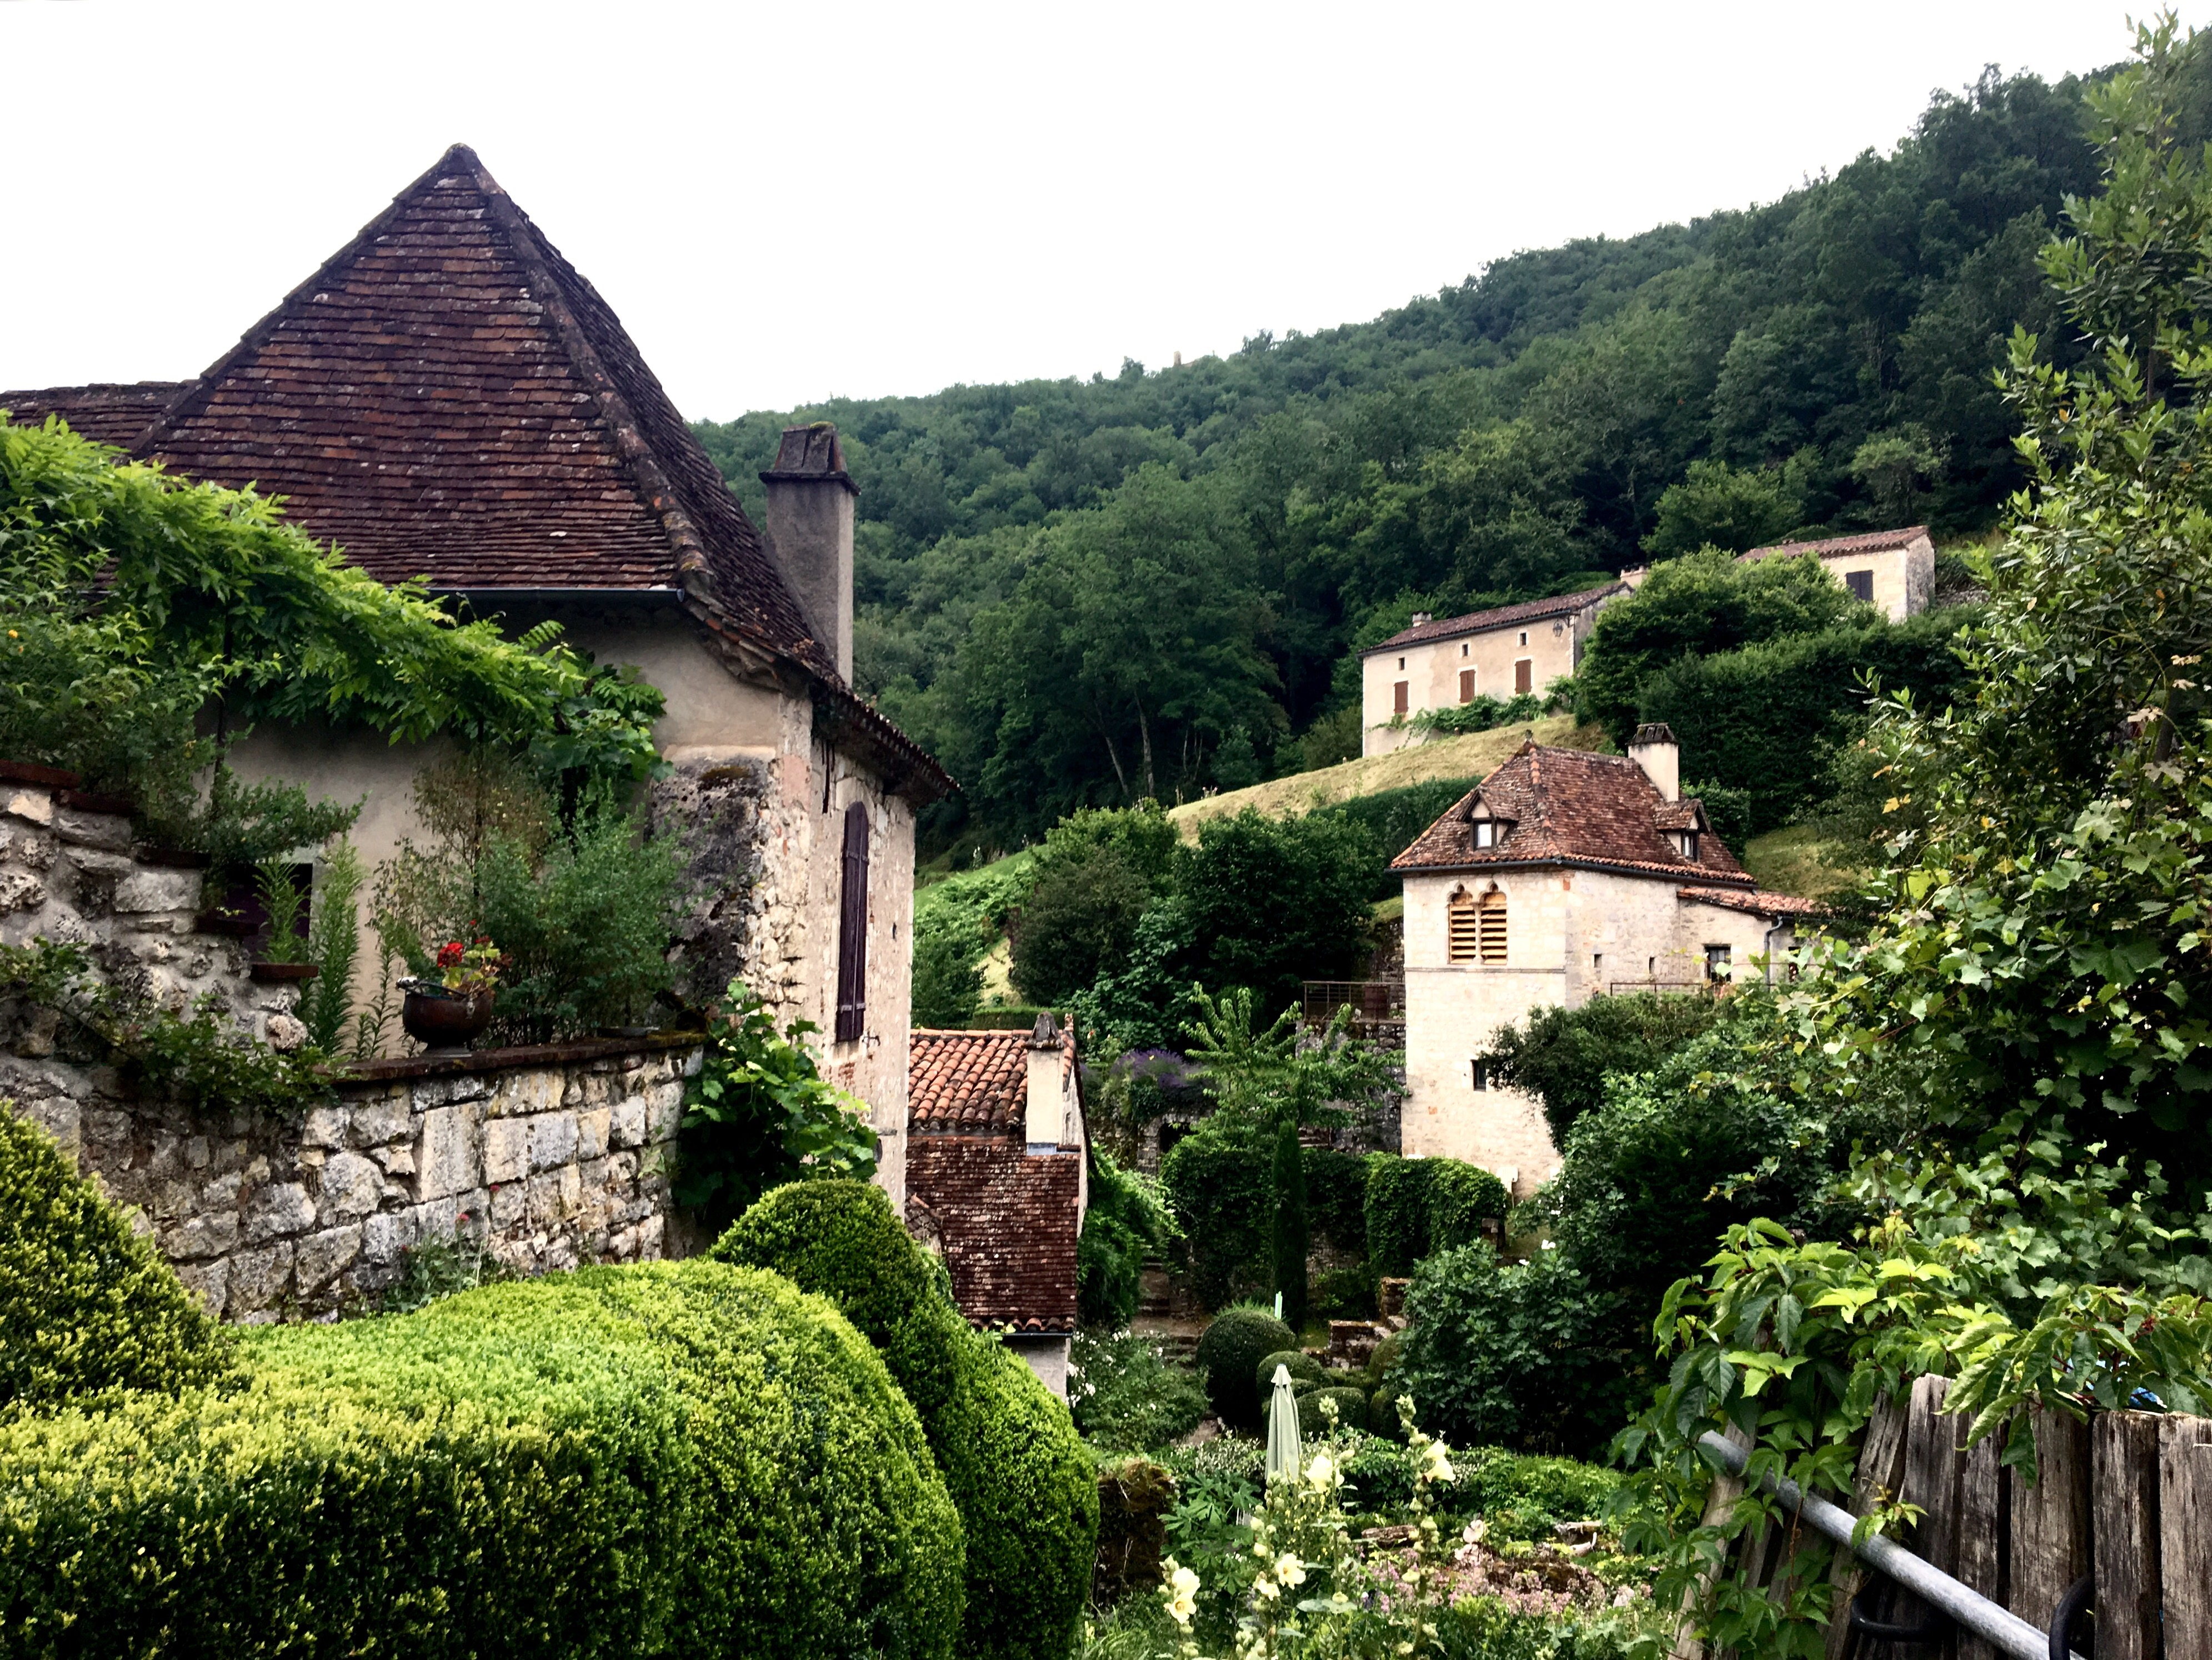 Village of Saint-Cirq-Lapopie, France